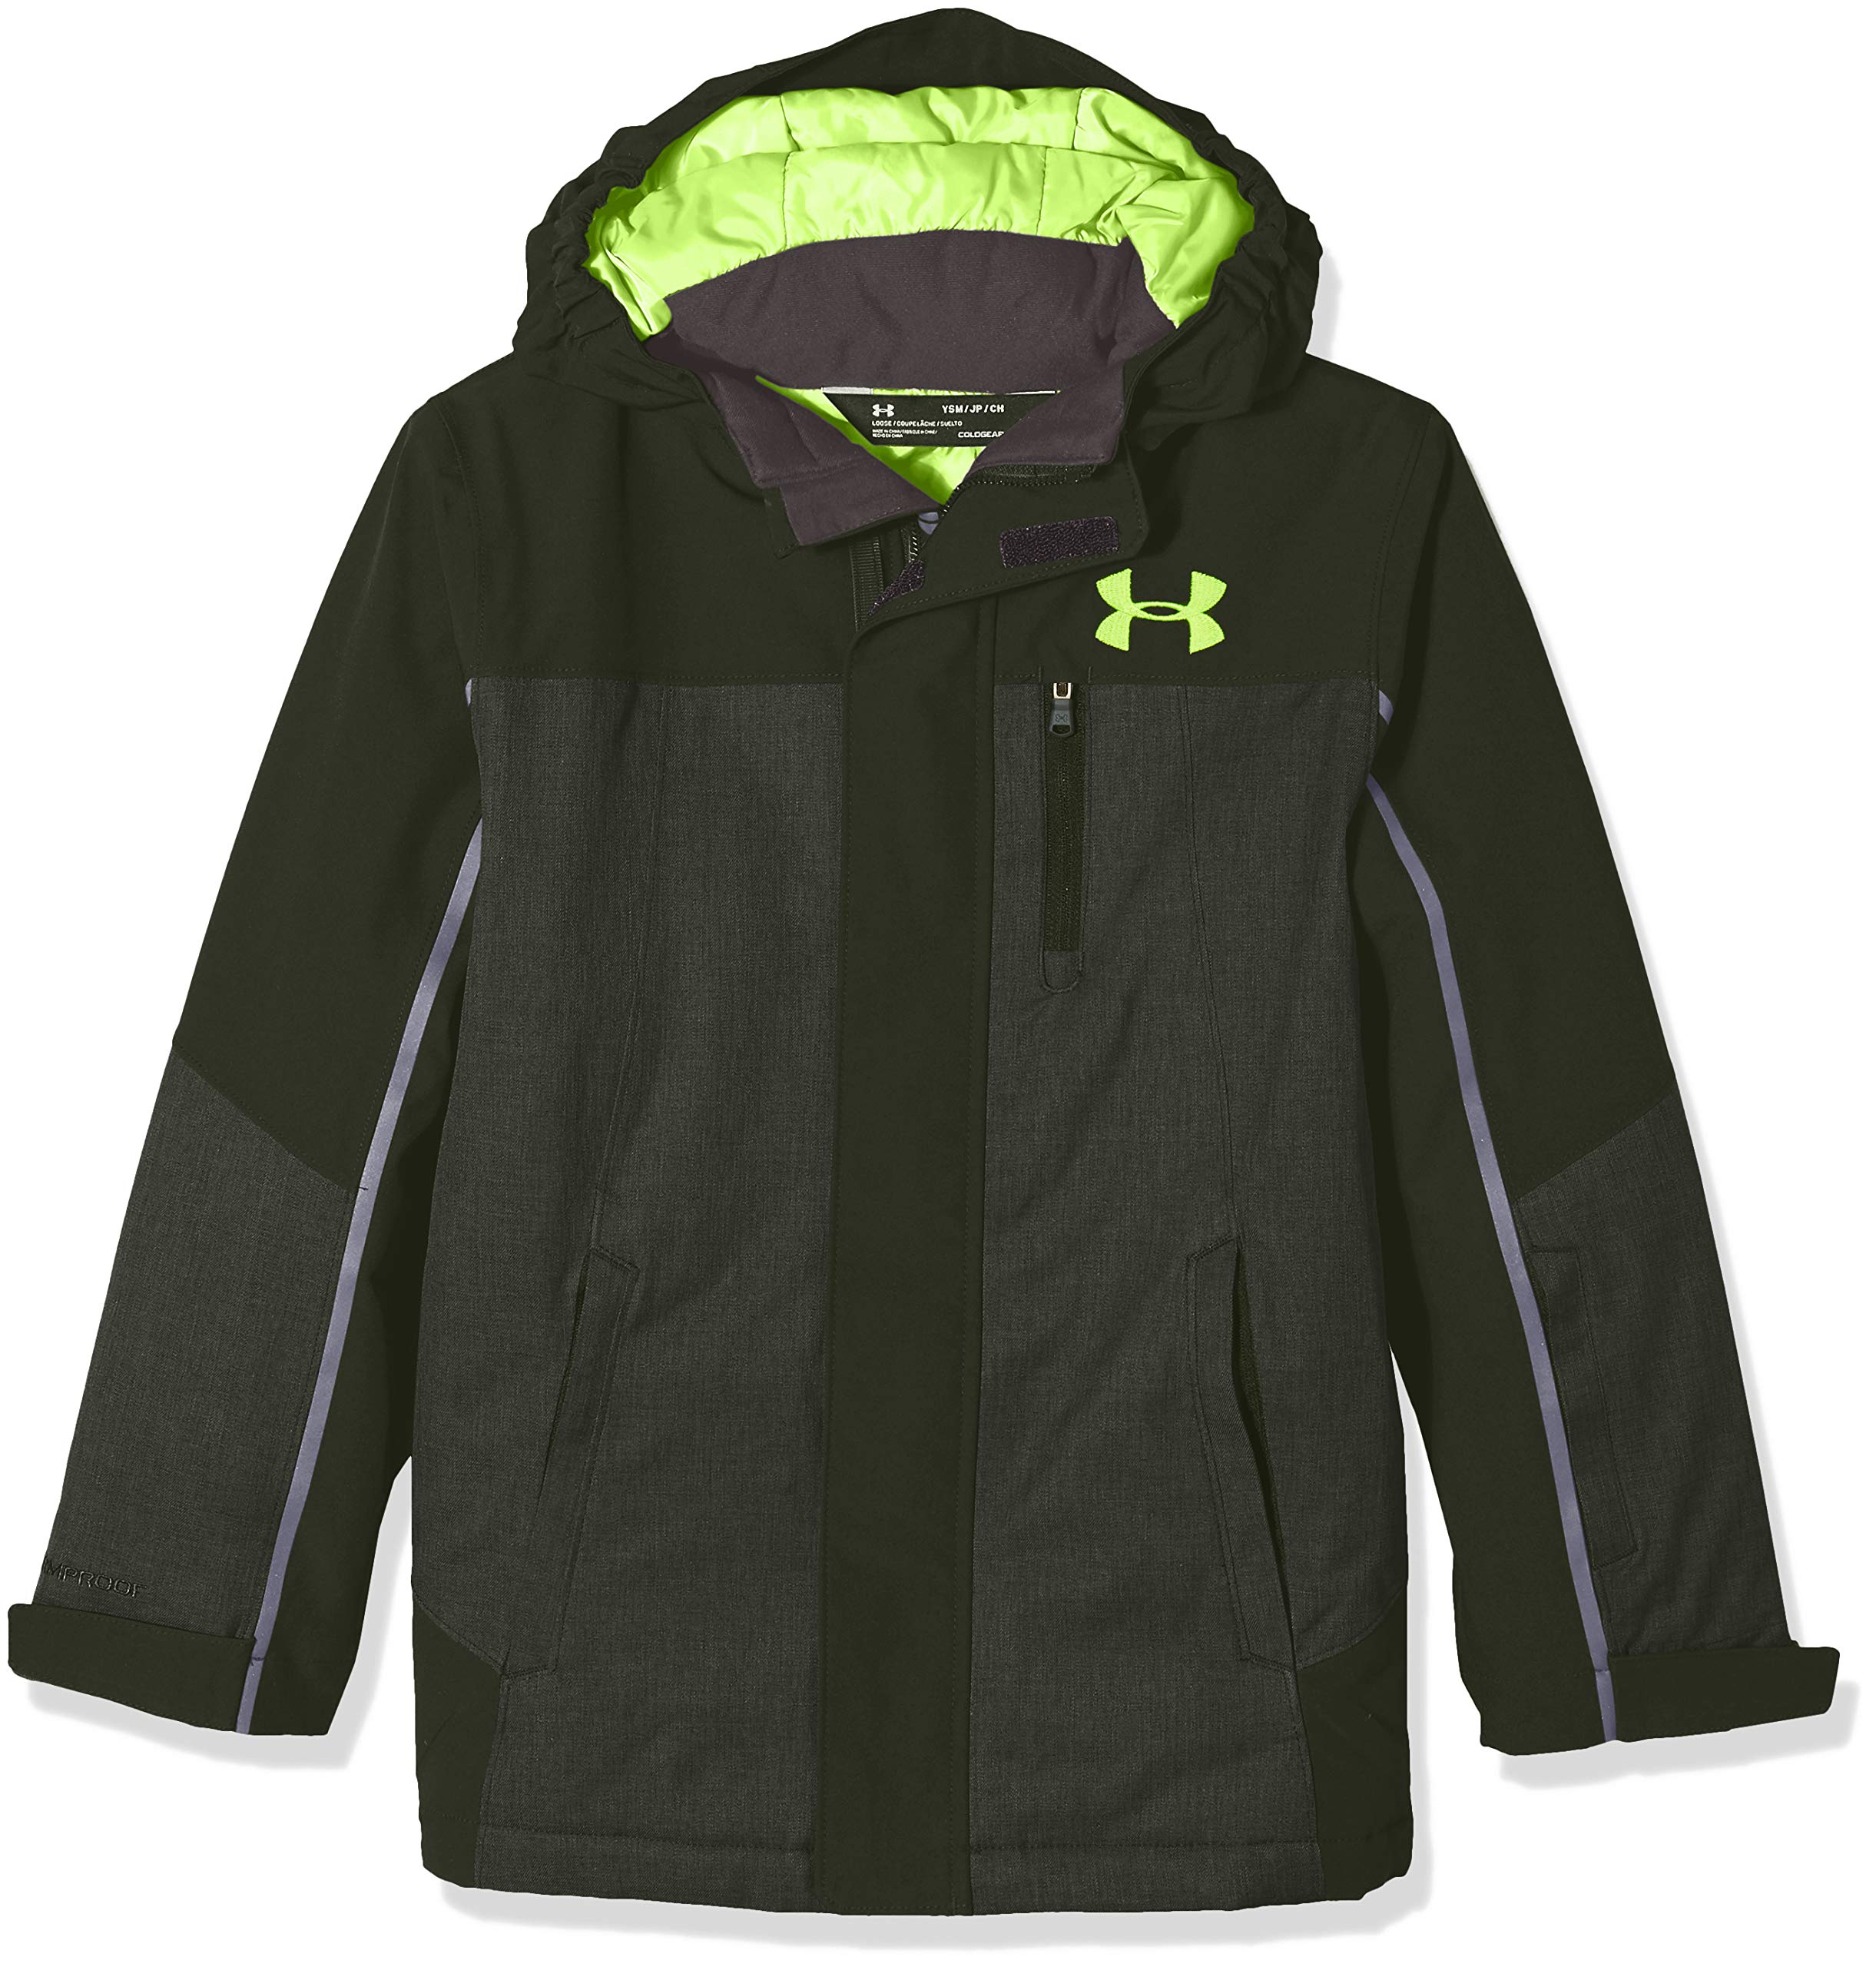 Under Armour Boys' Big Castlerock Jacket, Artillery Green, Large (14/16)